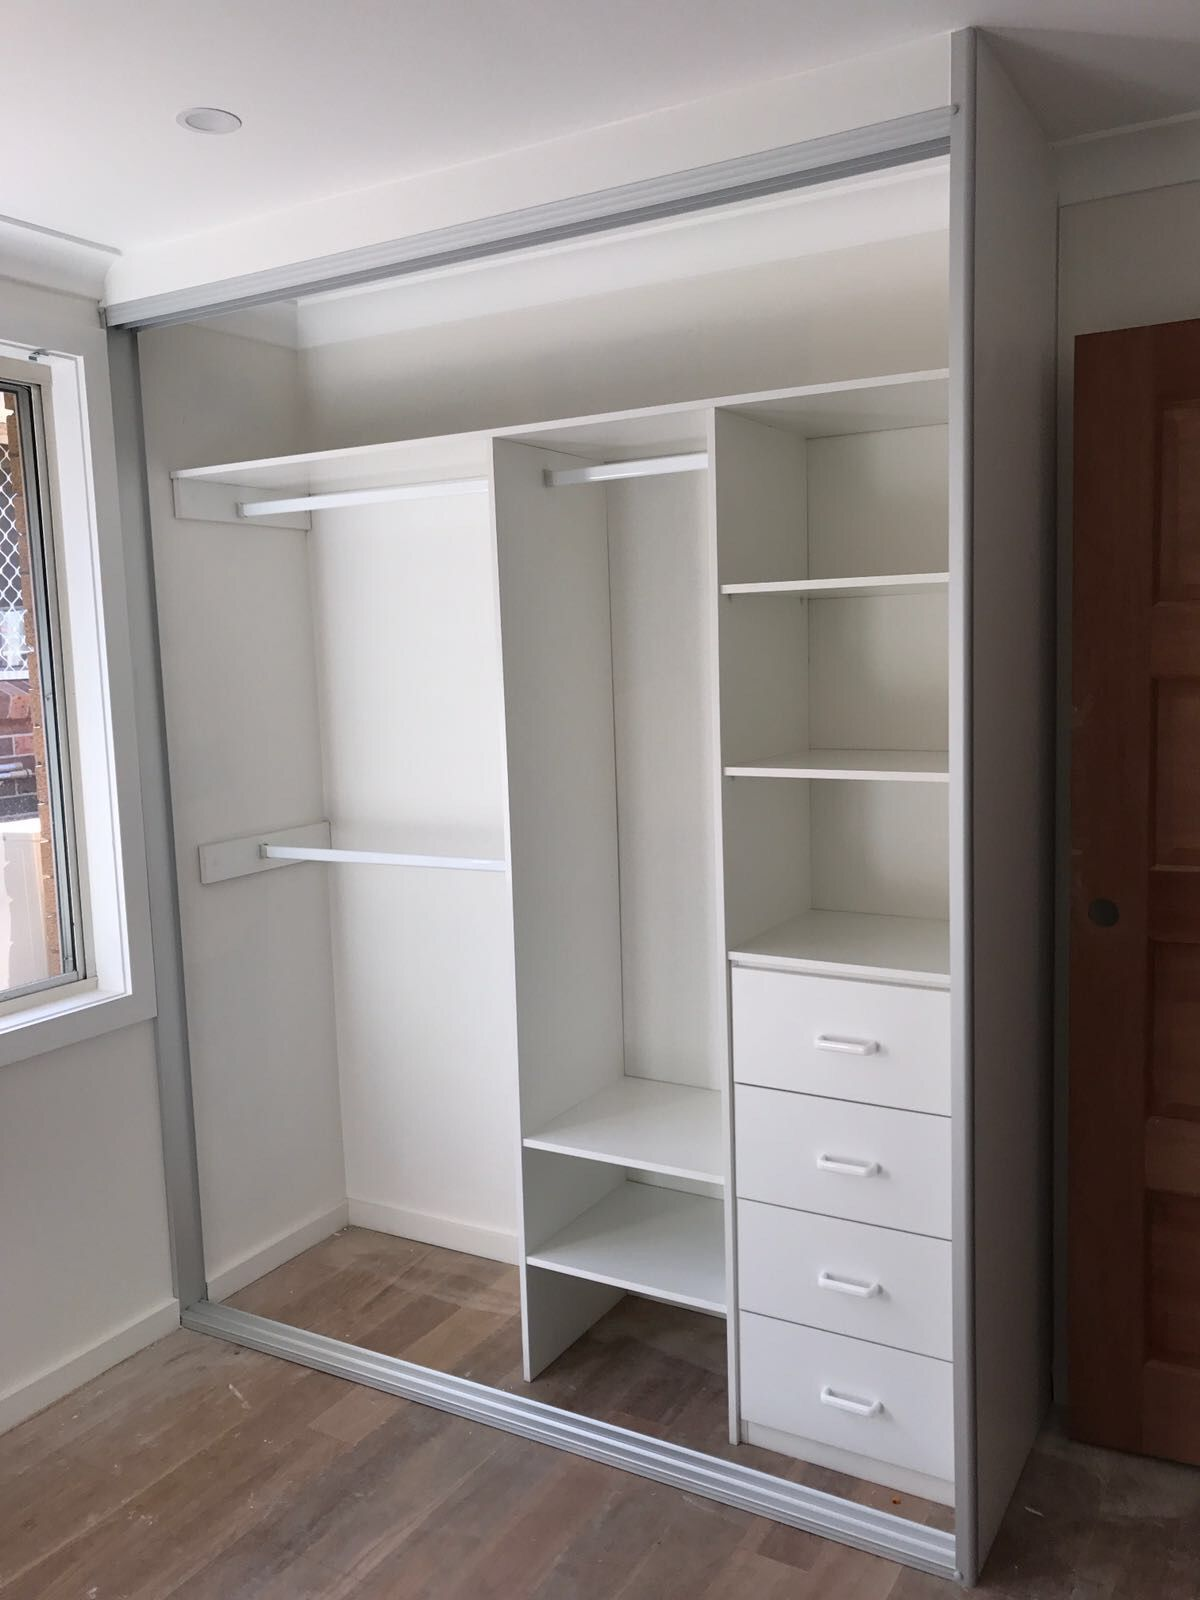 Closet Storage Solutions Storage Solutions Fantastic Built In Wardrobes Small Space